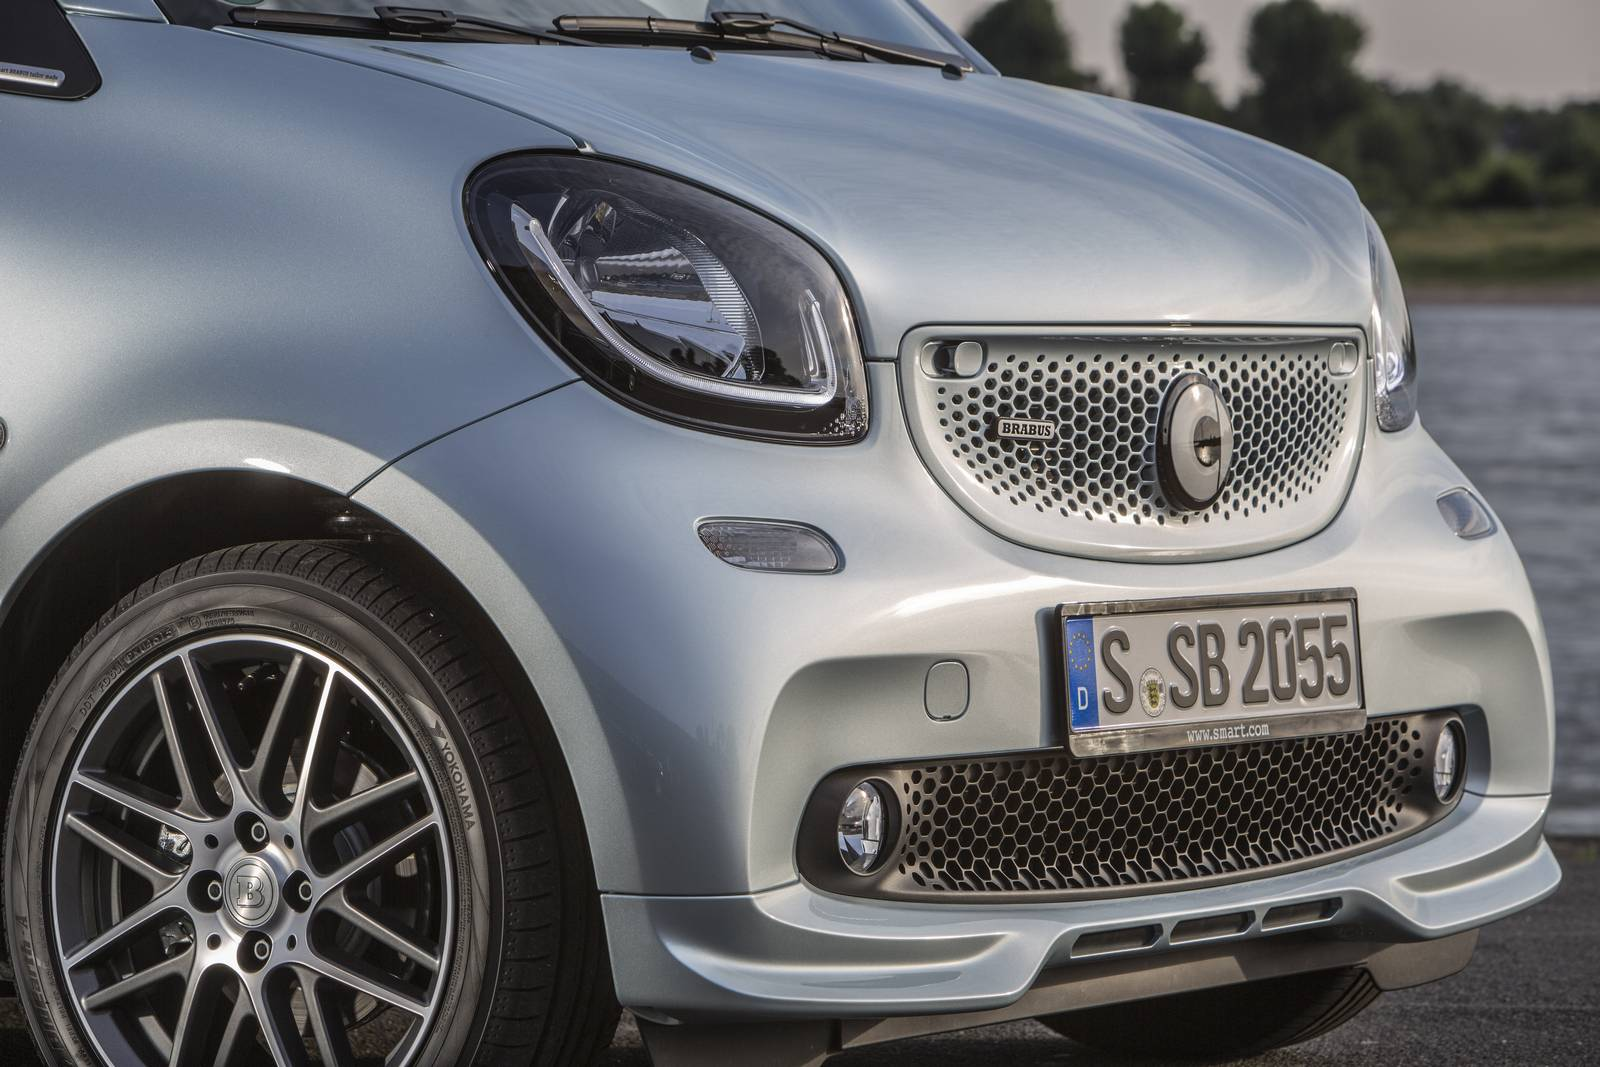 2017 smart brabus fortwo review gtspirit driving experience altavistaventures Image collections